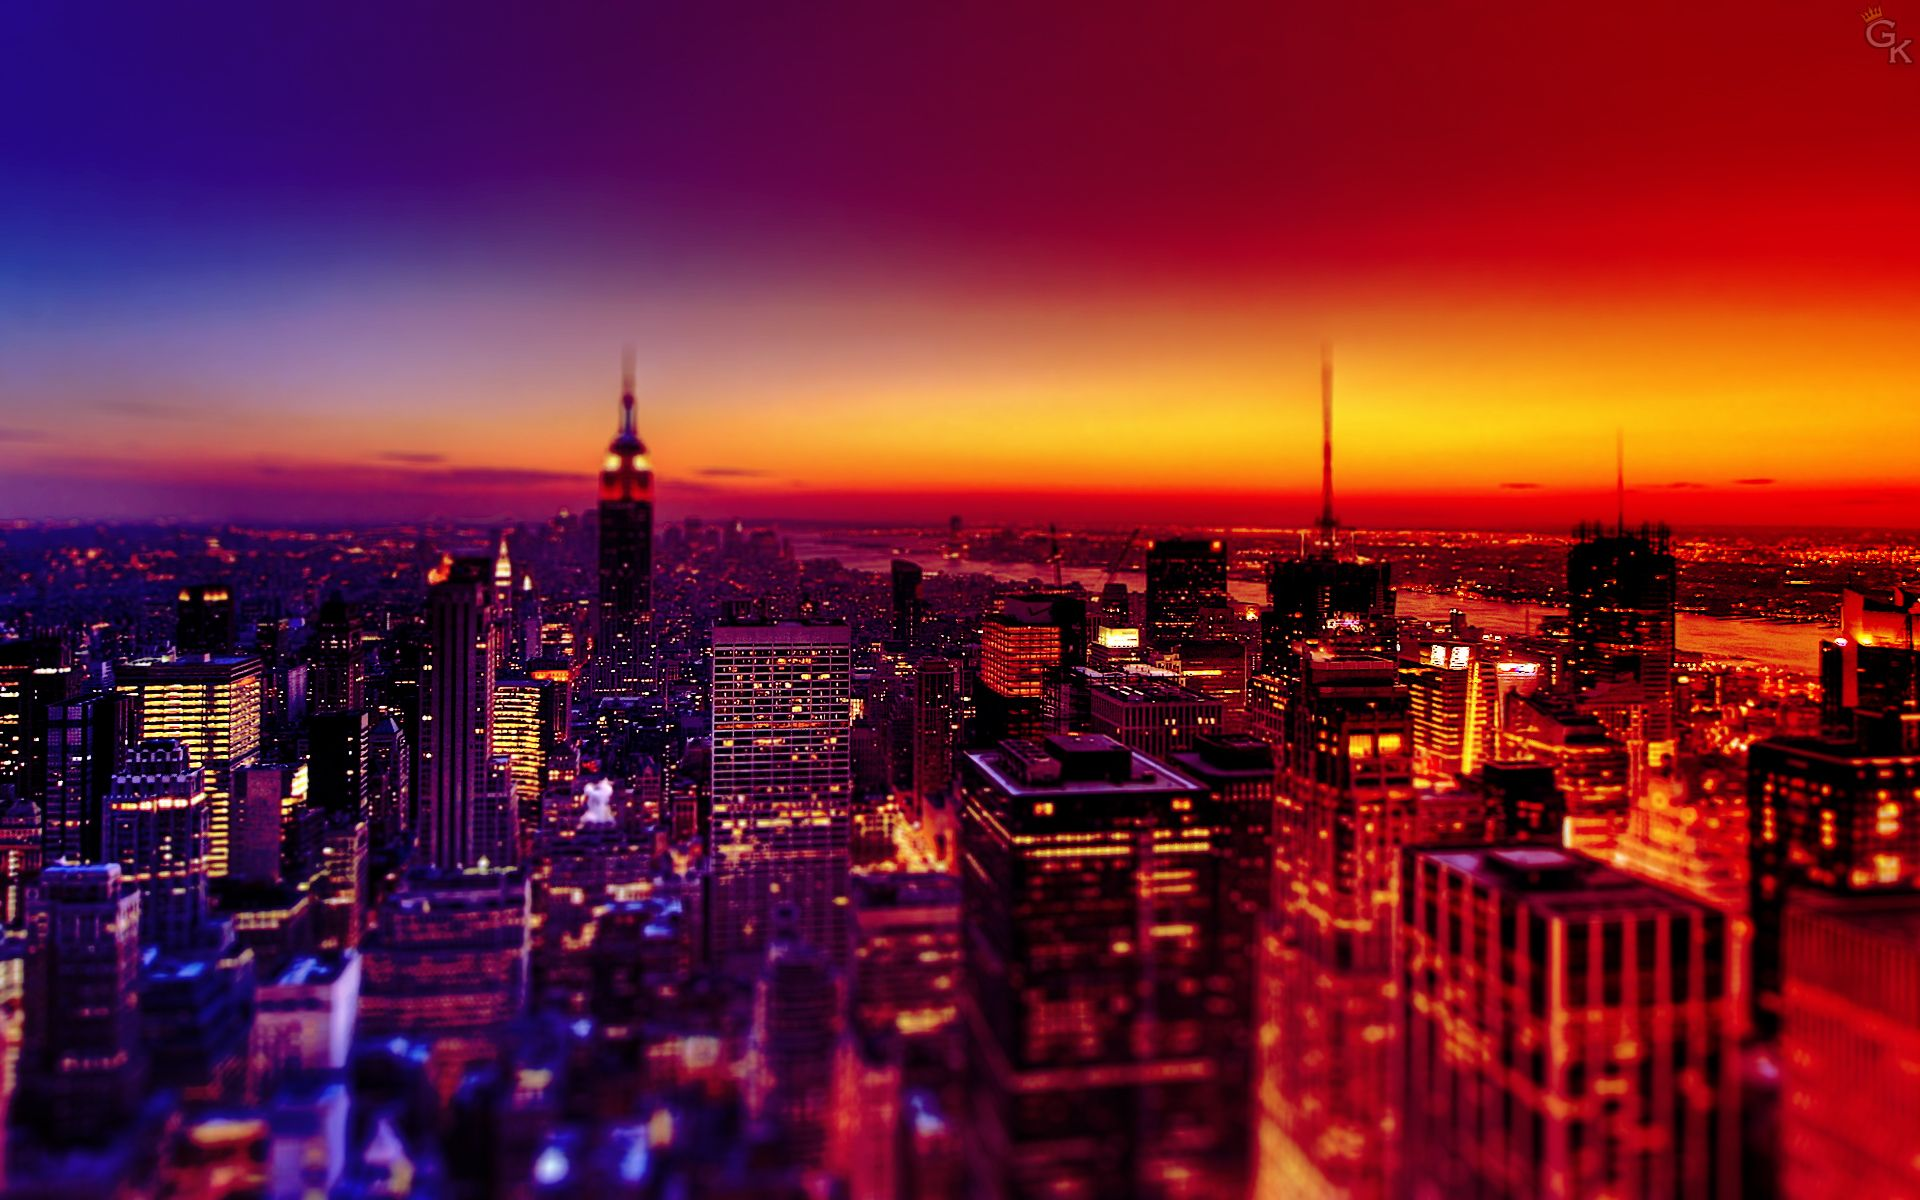 Night City Wallpapers Mobile